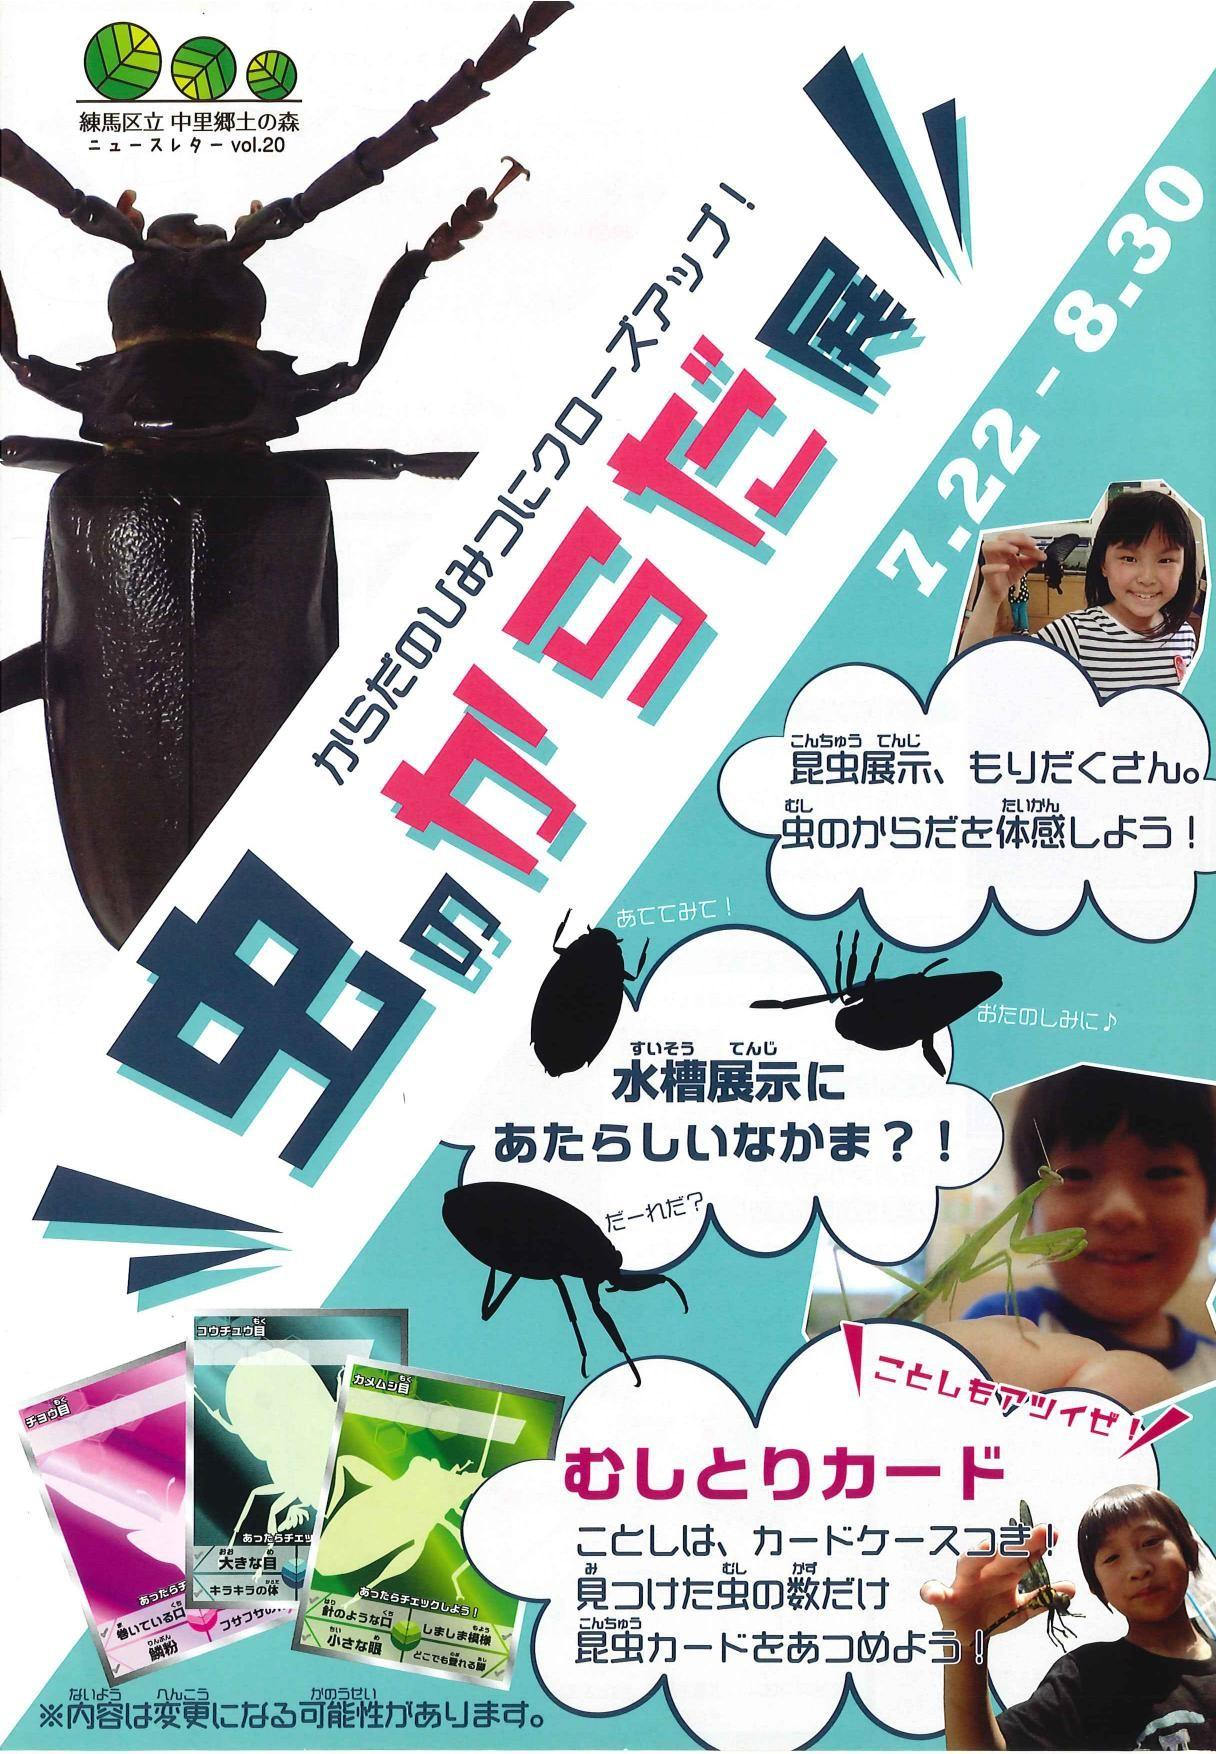 Body exhibition of insect